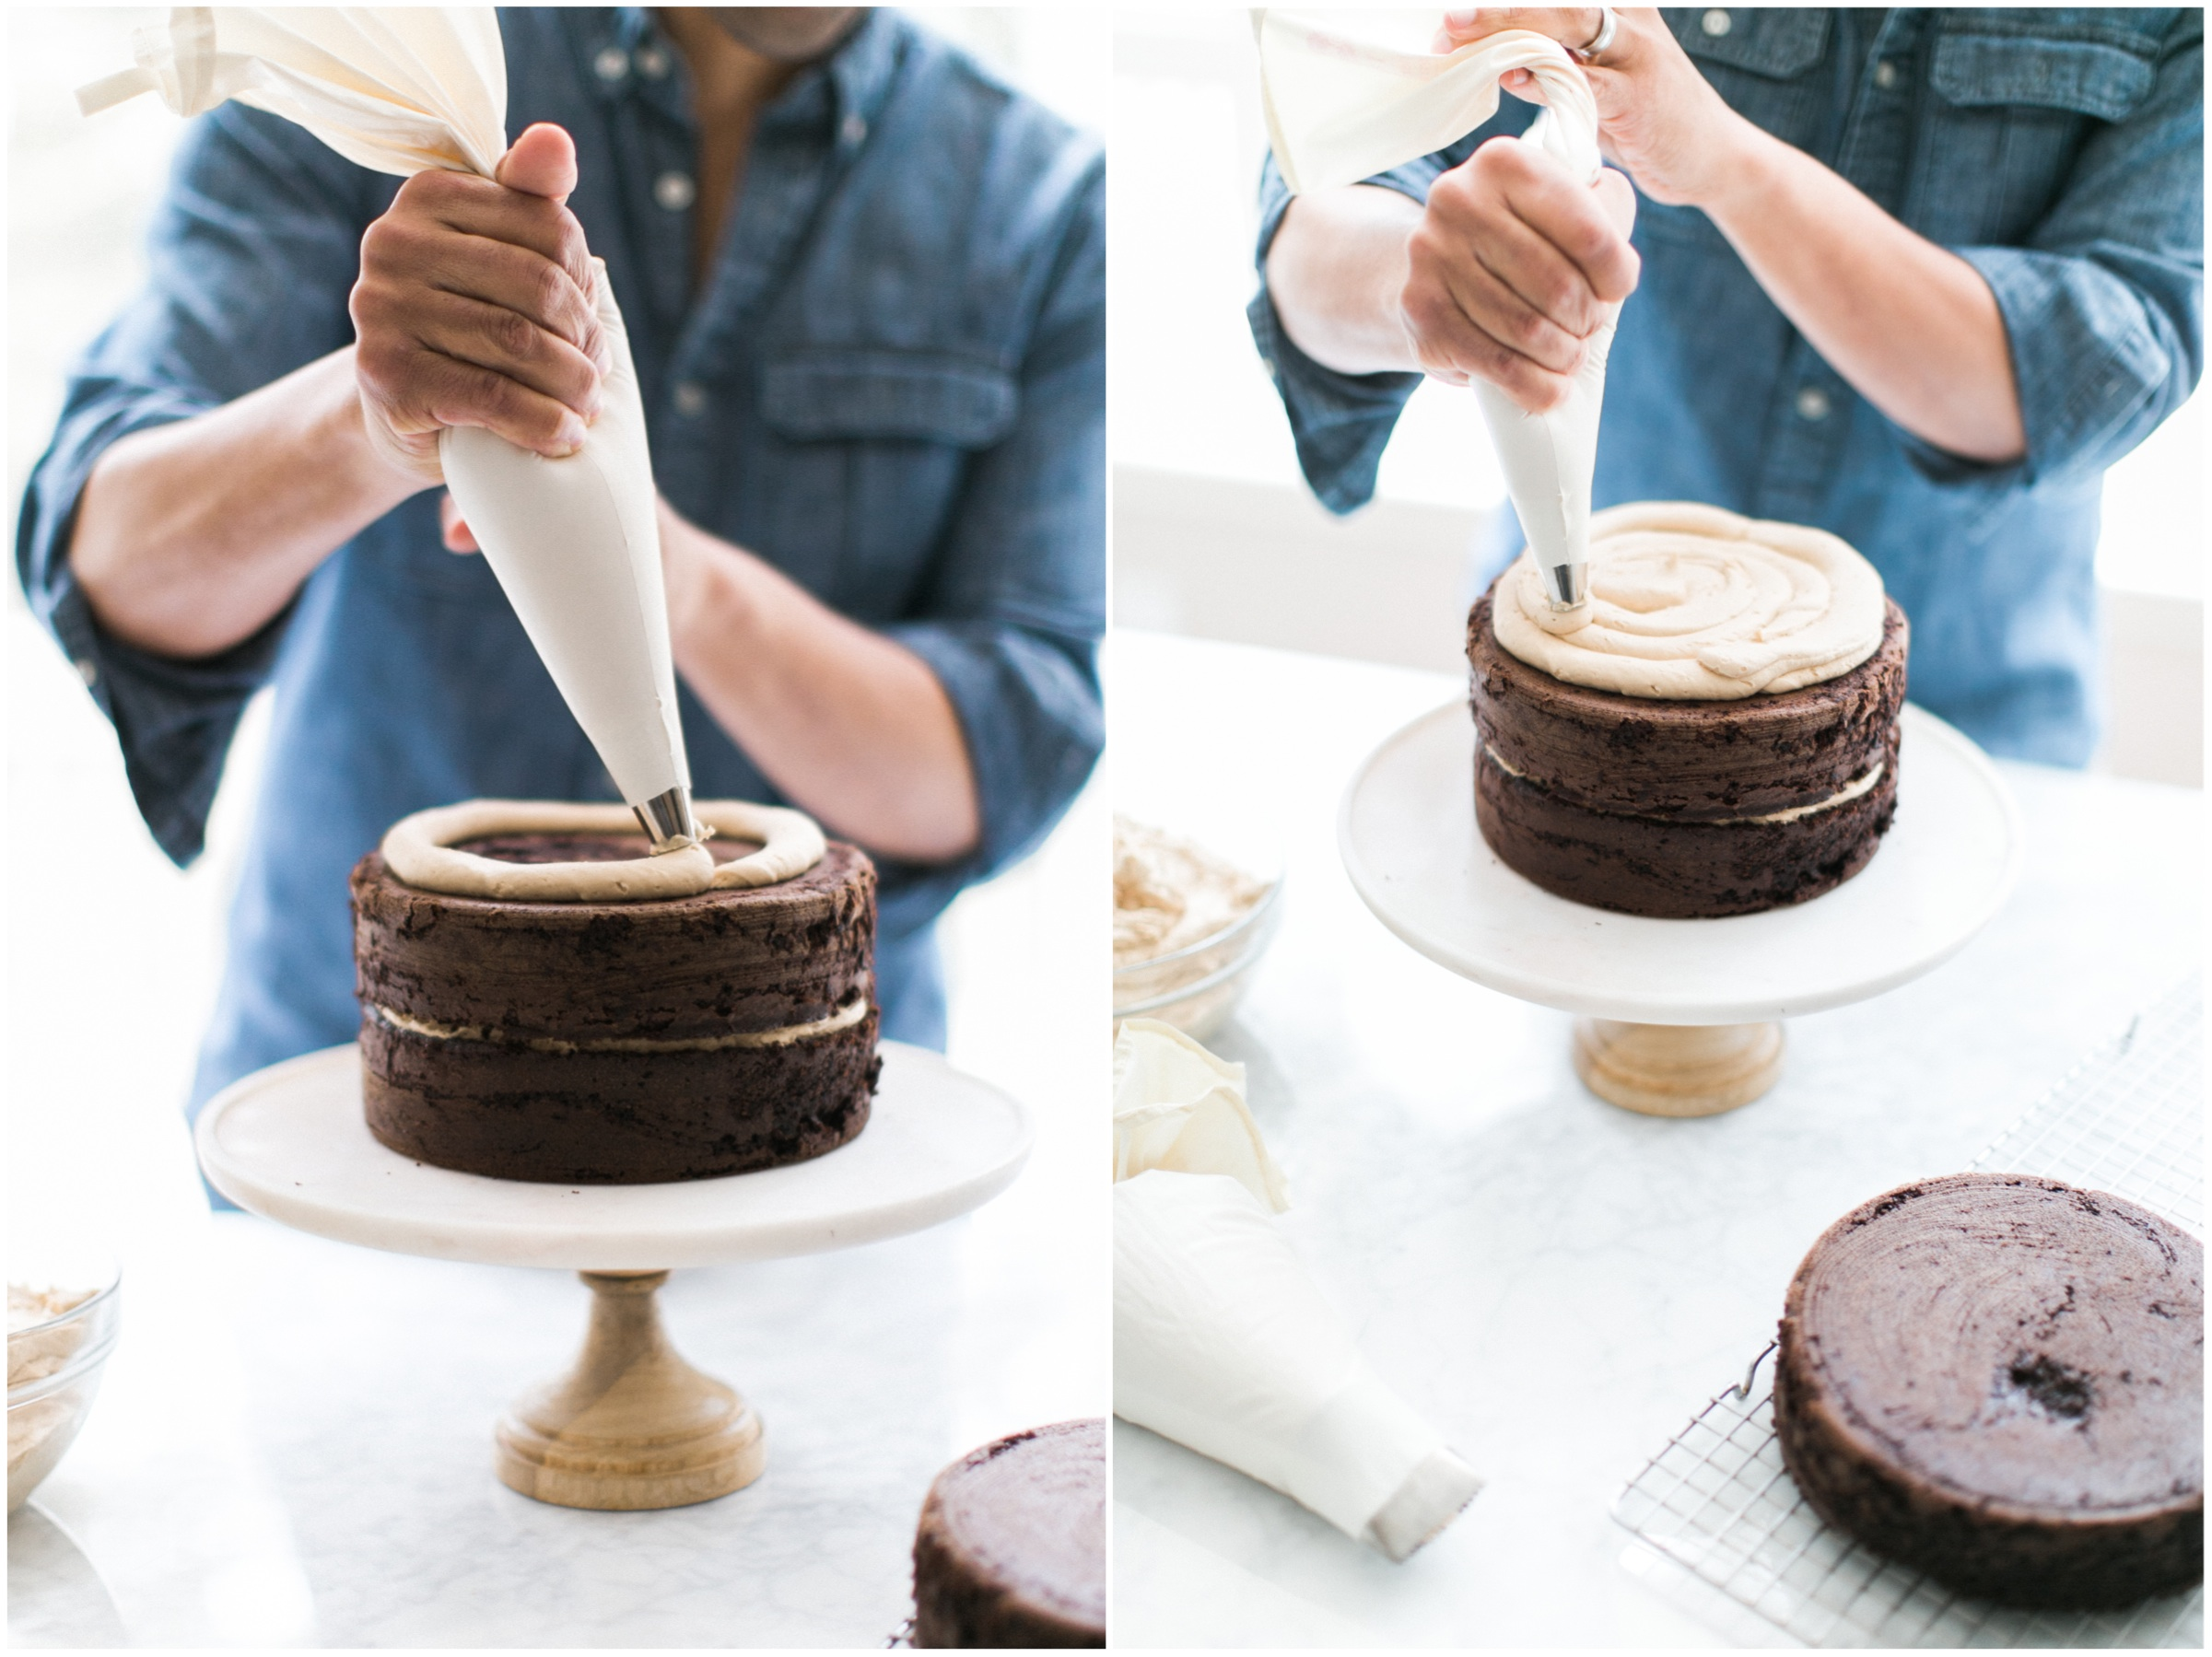 sinclair-and-moore-chocolate-peanutbutter-cake-18